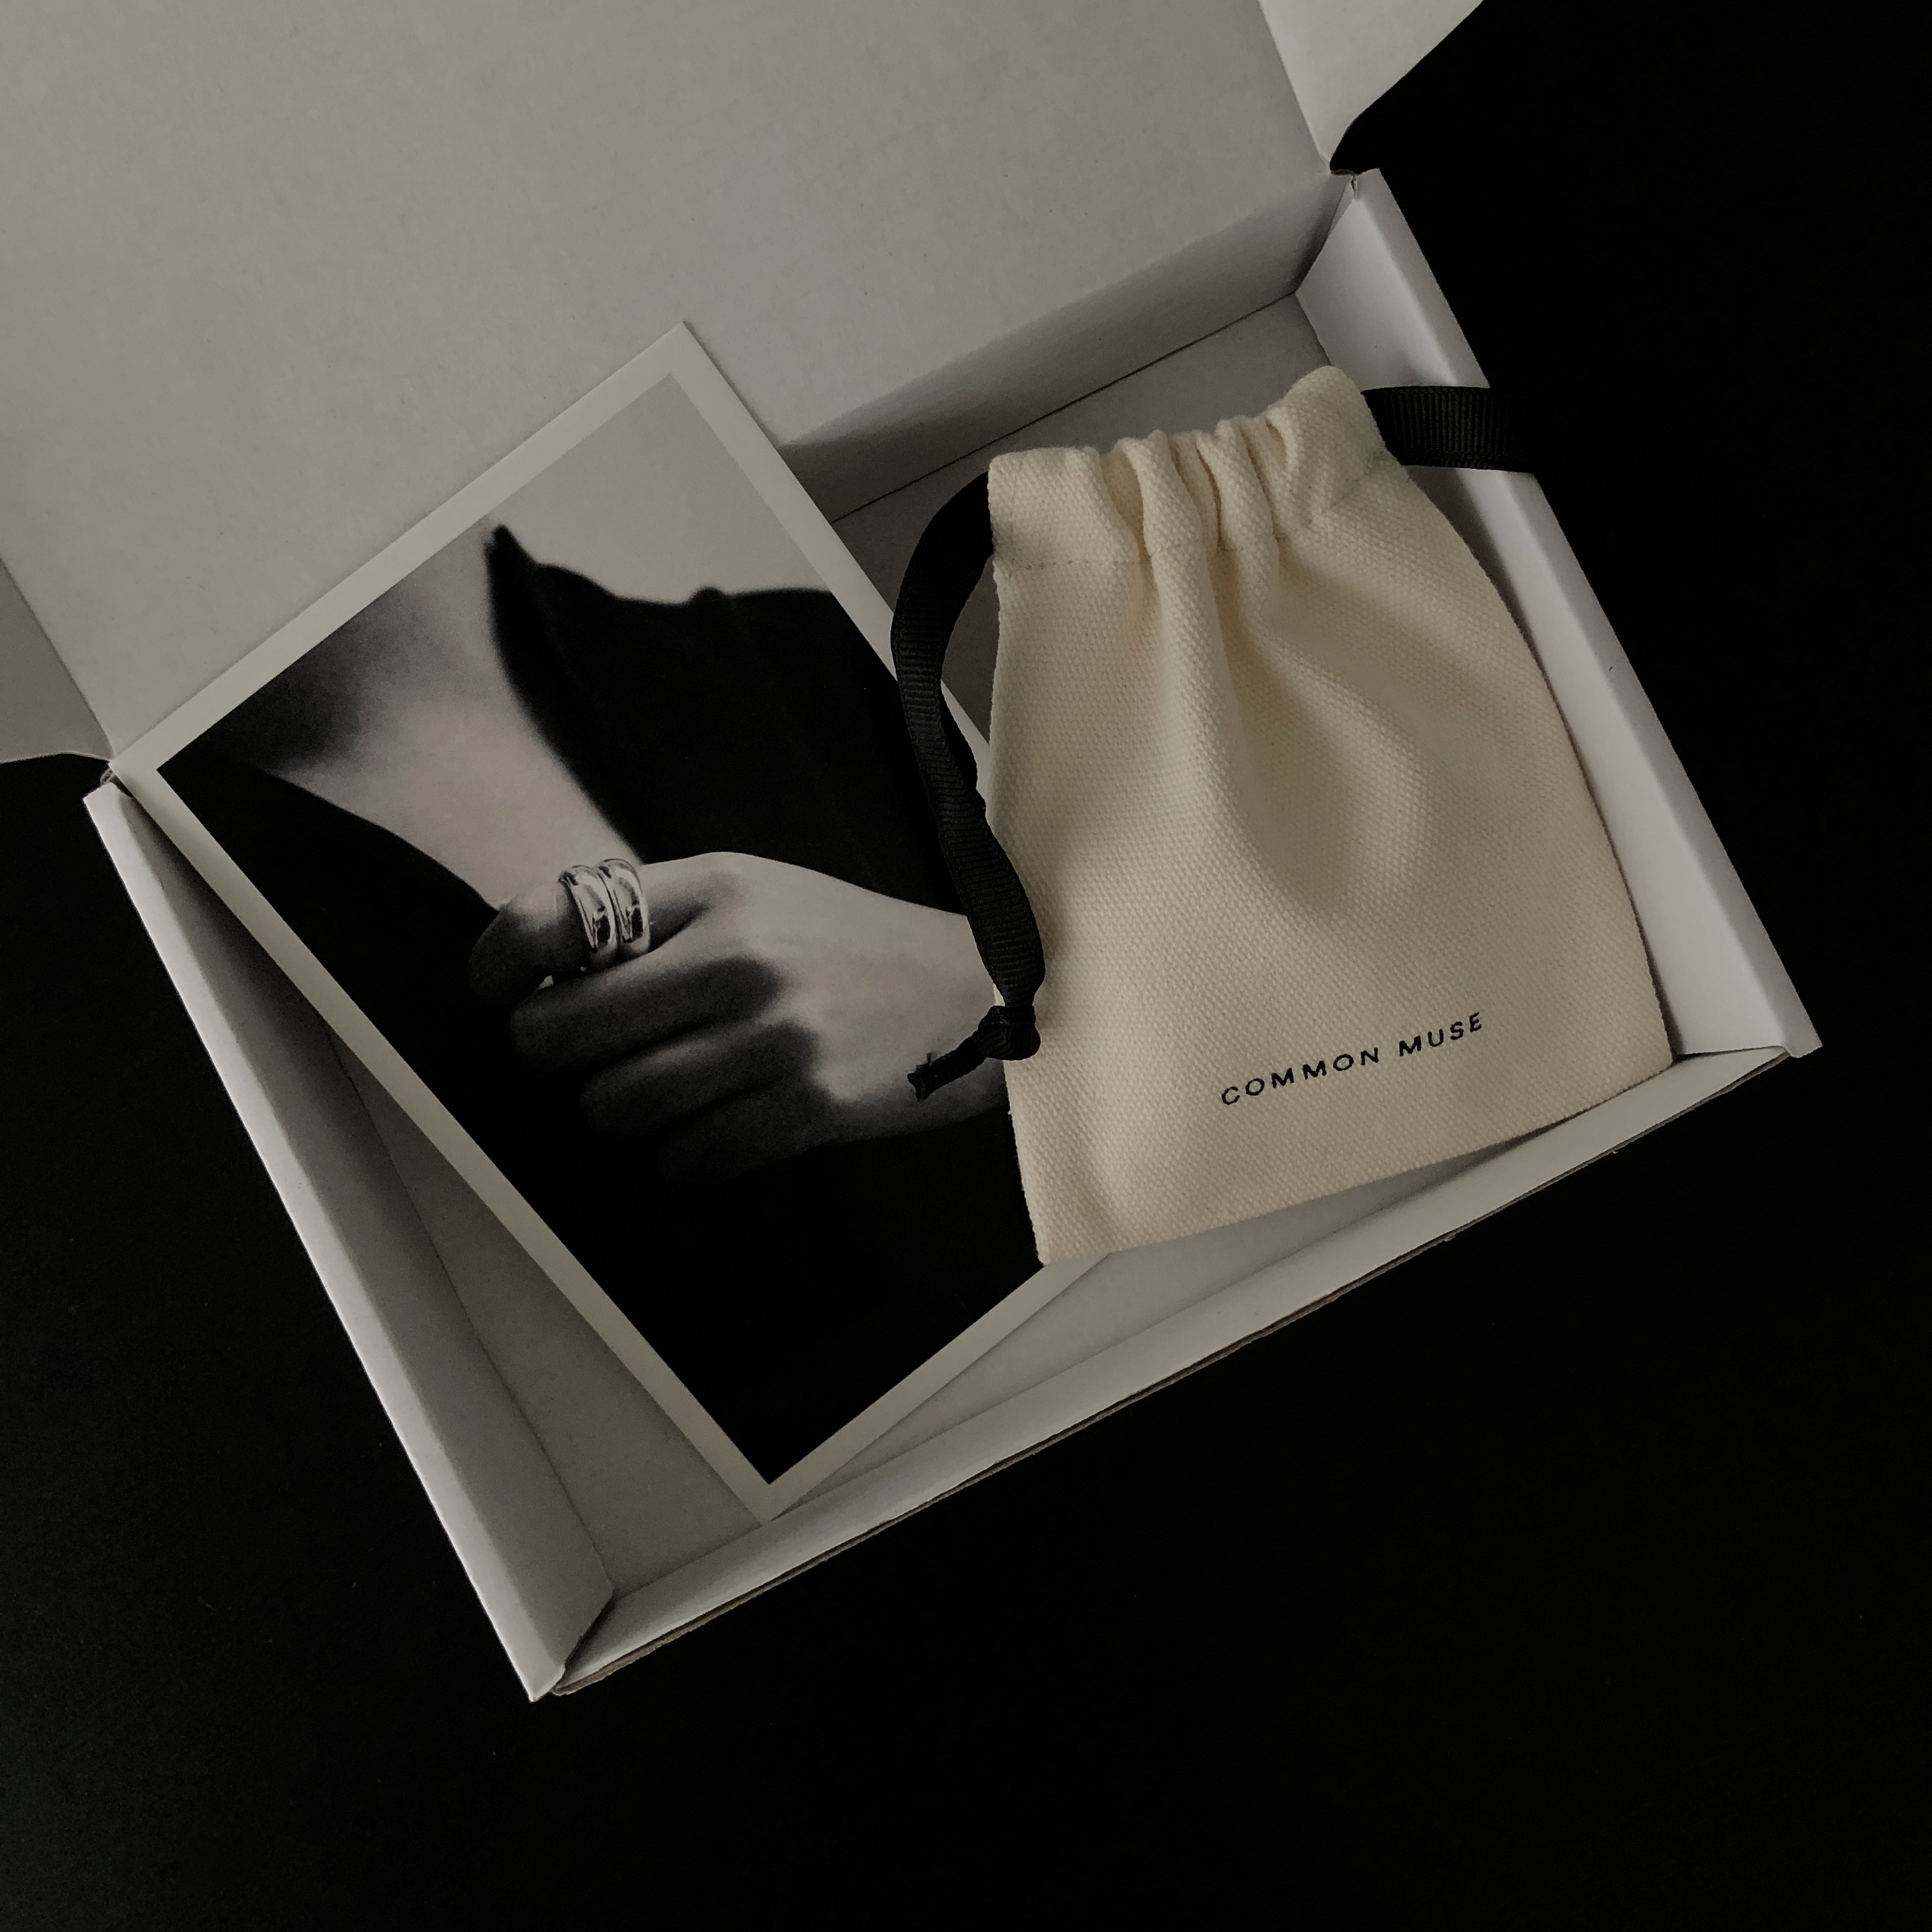 Download Common Muse Jewelry Packaging Design Jewelry Packaging Packaging Ideas Business